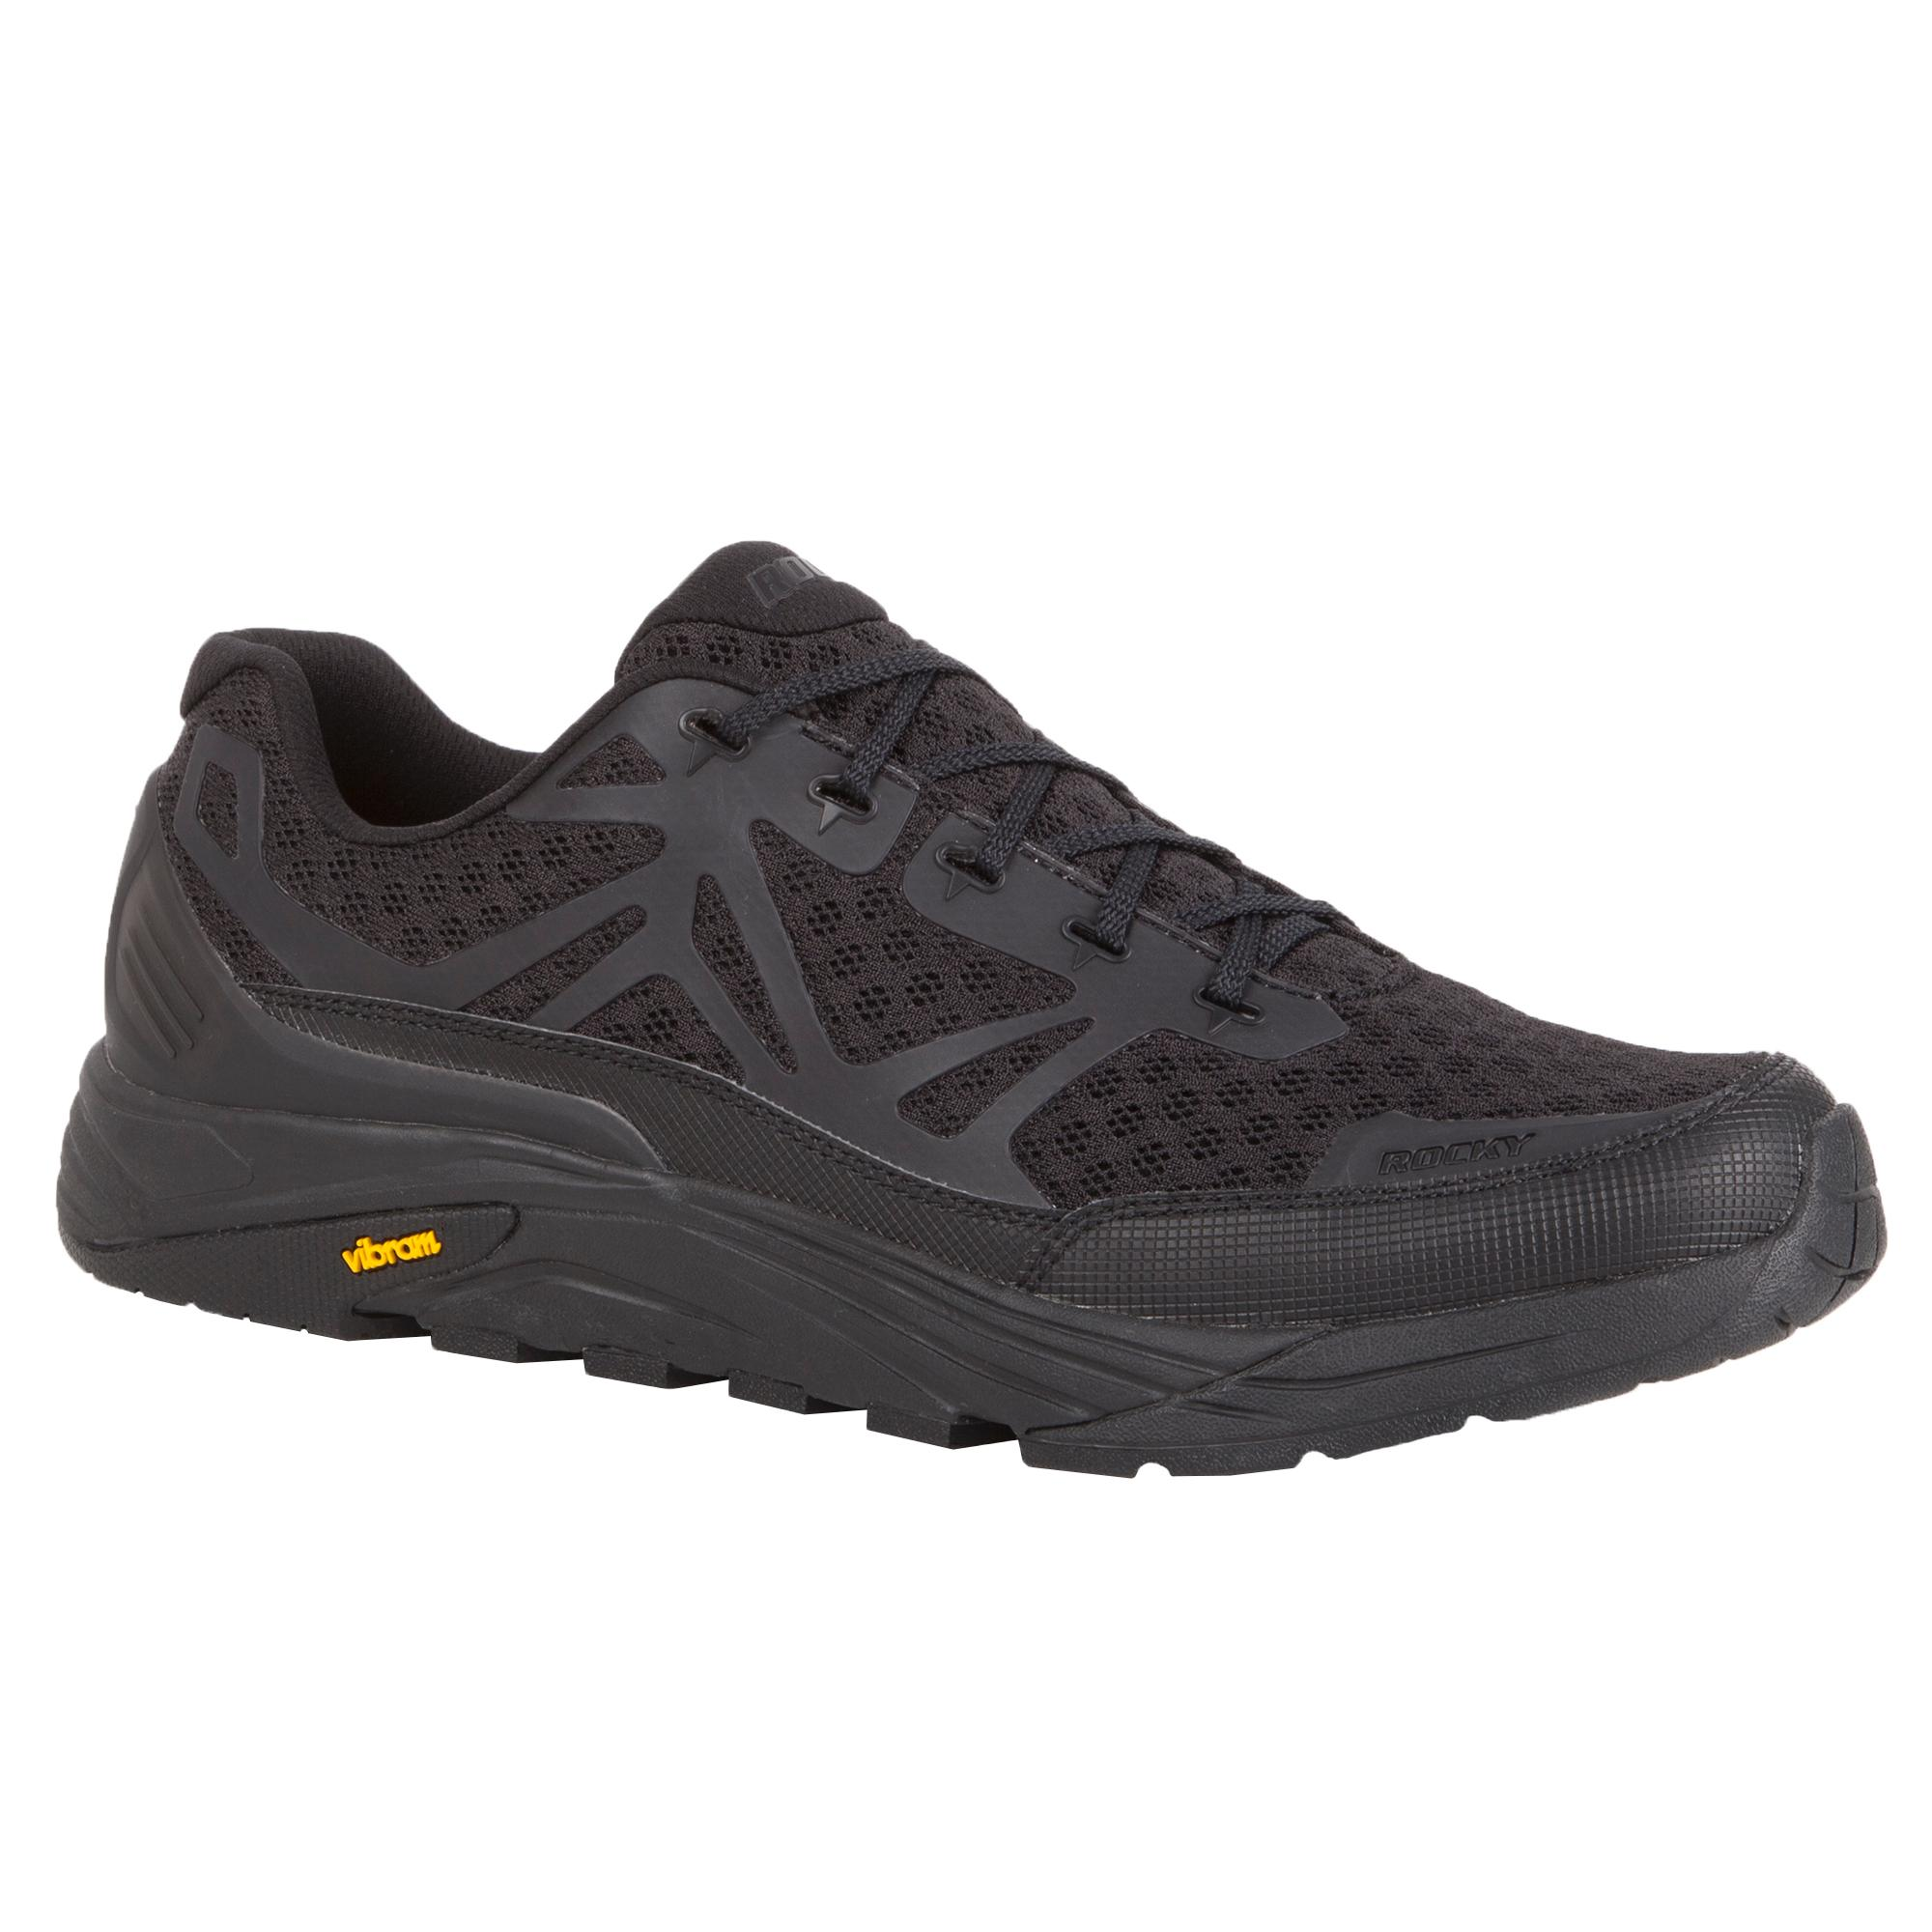 Shoes Similar To Shape Ups With Steel Toe